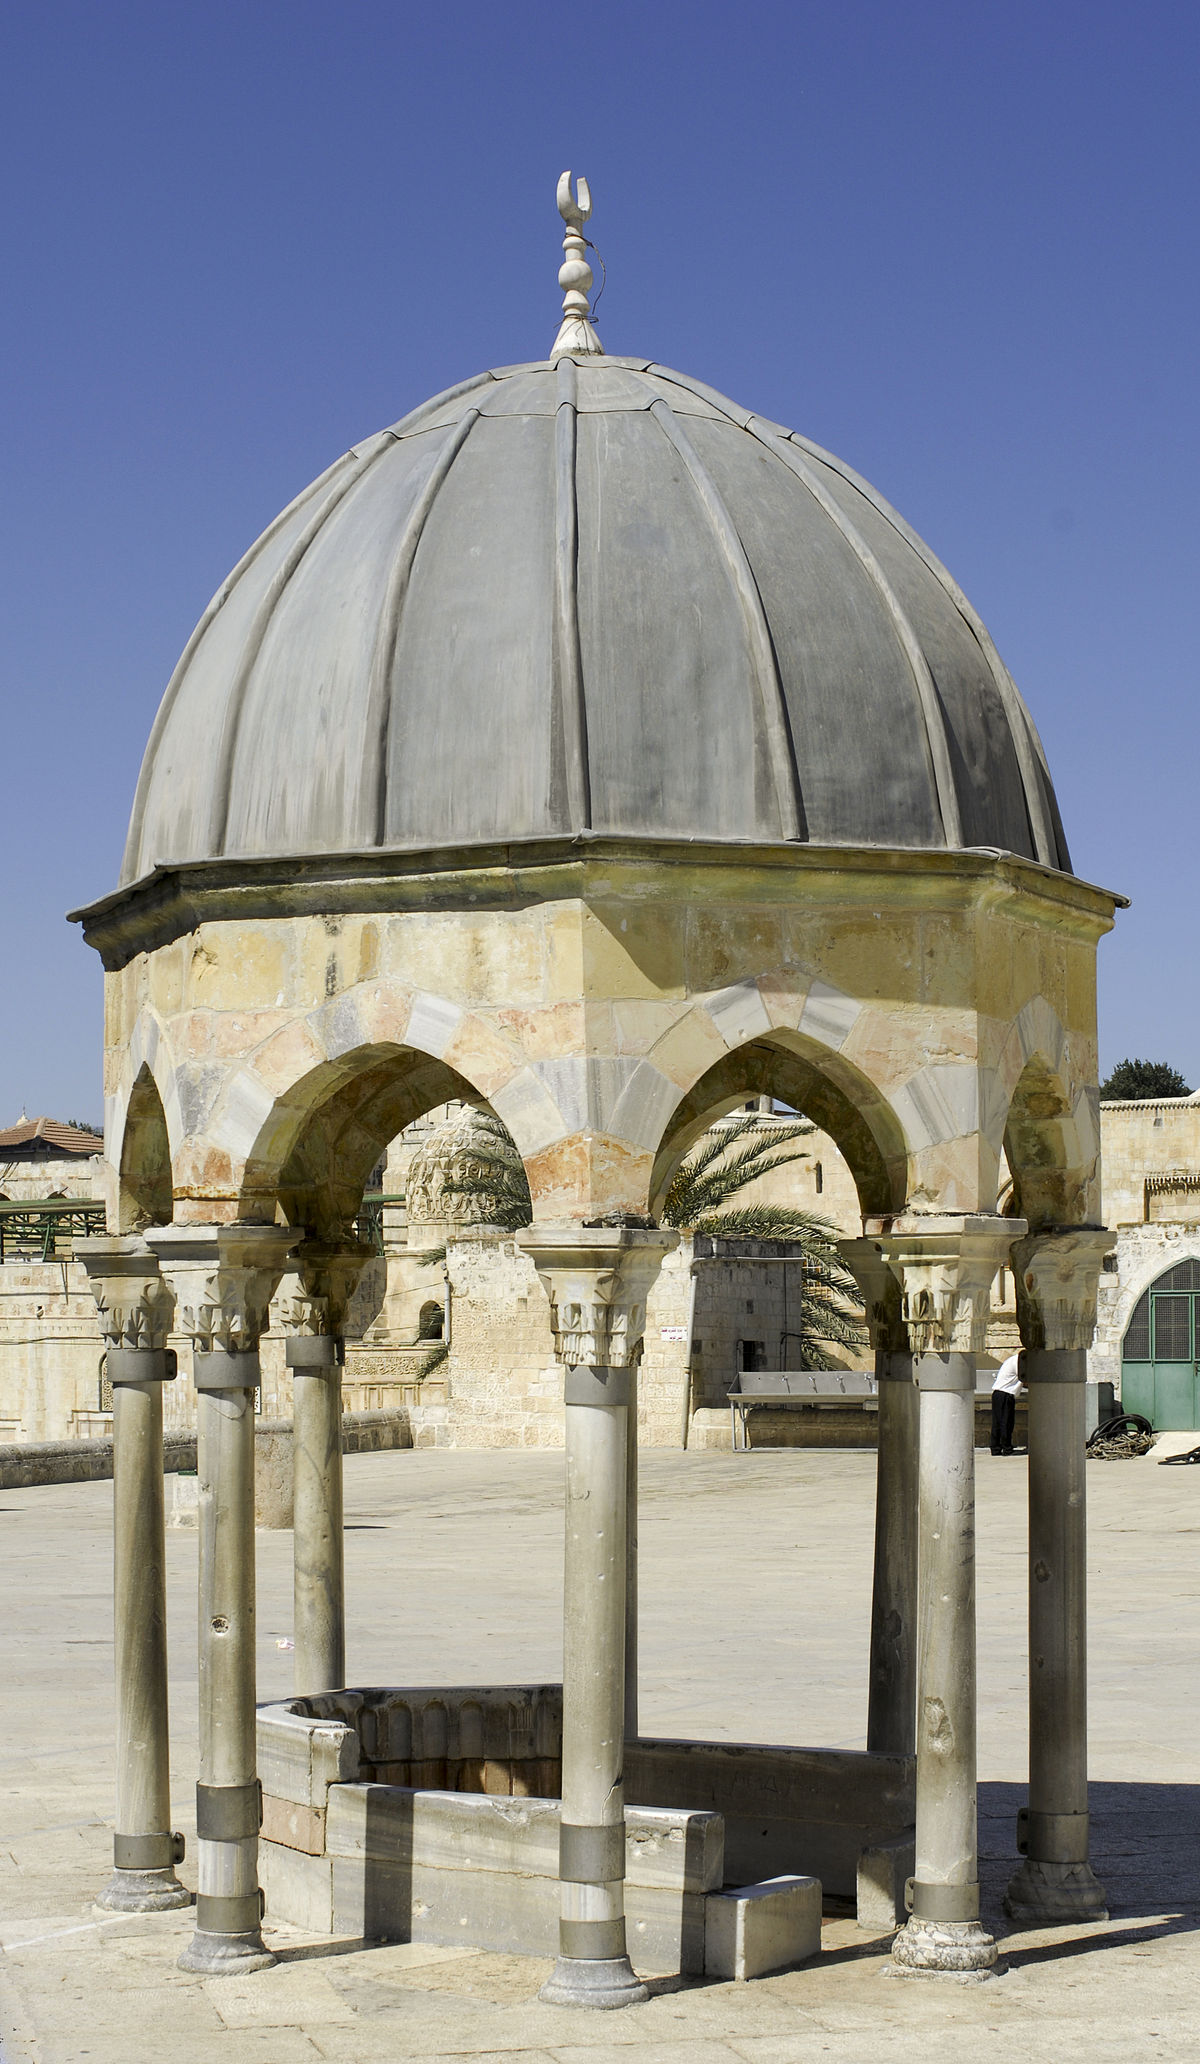 Dome of the Prophet - Wikipedia